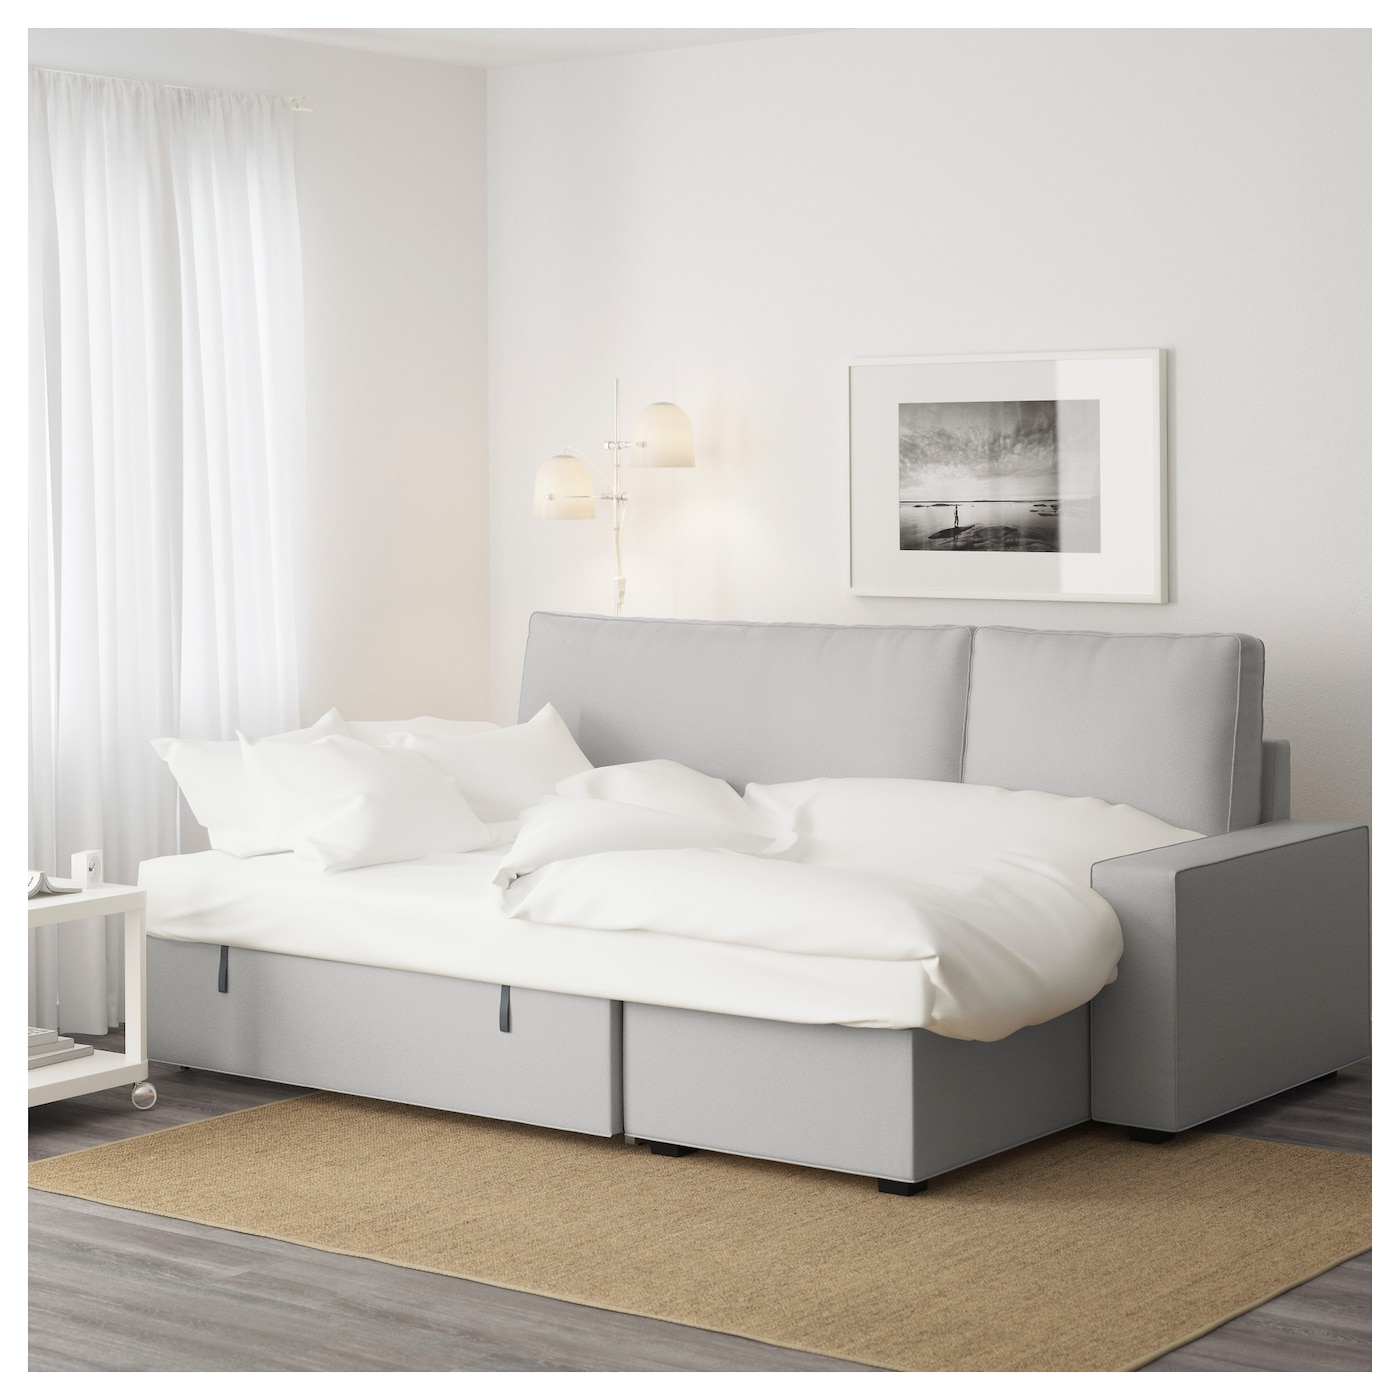 Vilasund sofa bed with chaise longue ramna light grey ikea for Bed chaise longue